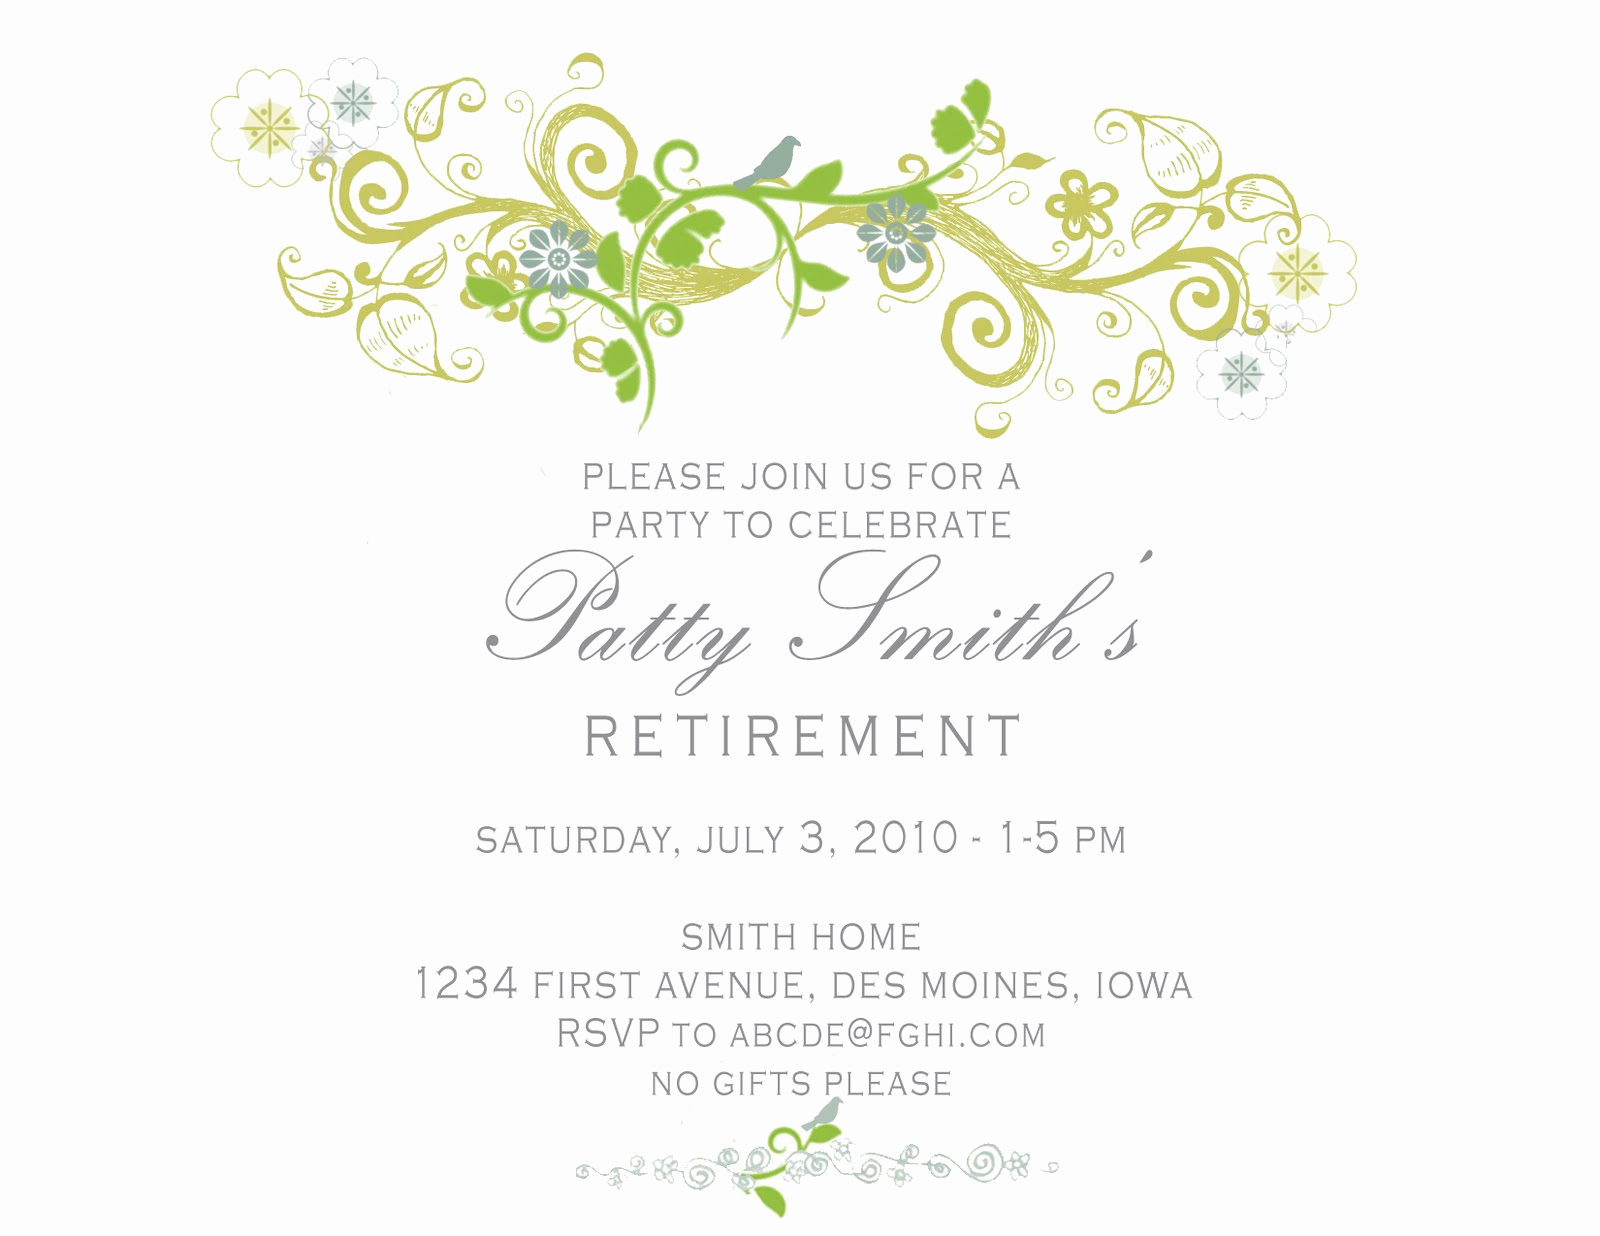 Retirement Party Invitation Template Elegant Idesign A Retirement Party Invitation